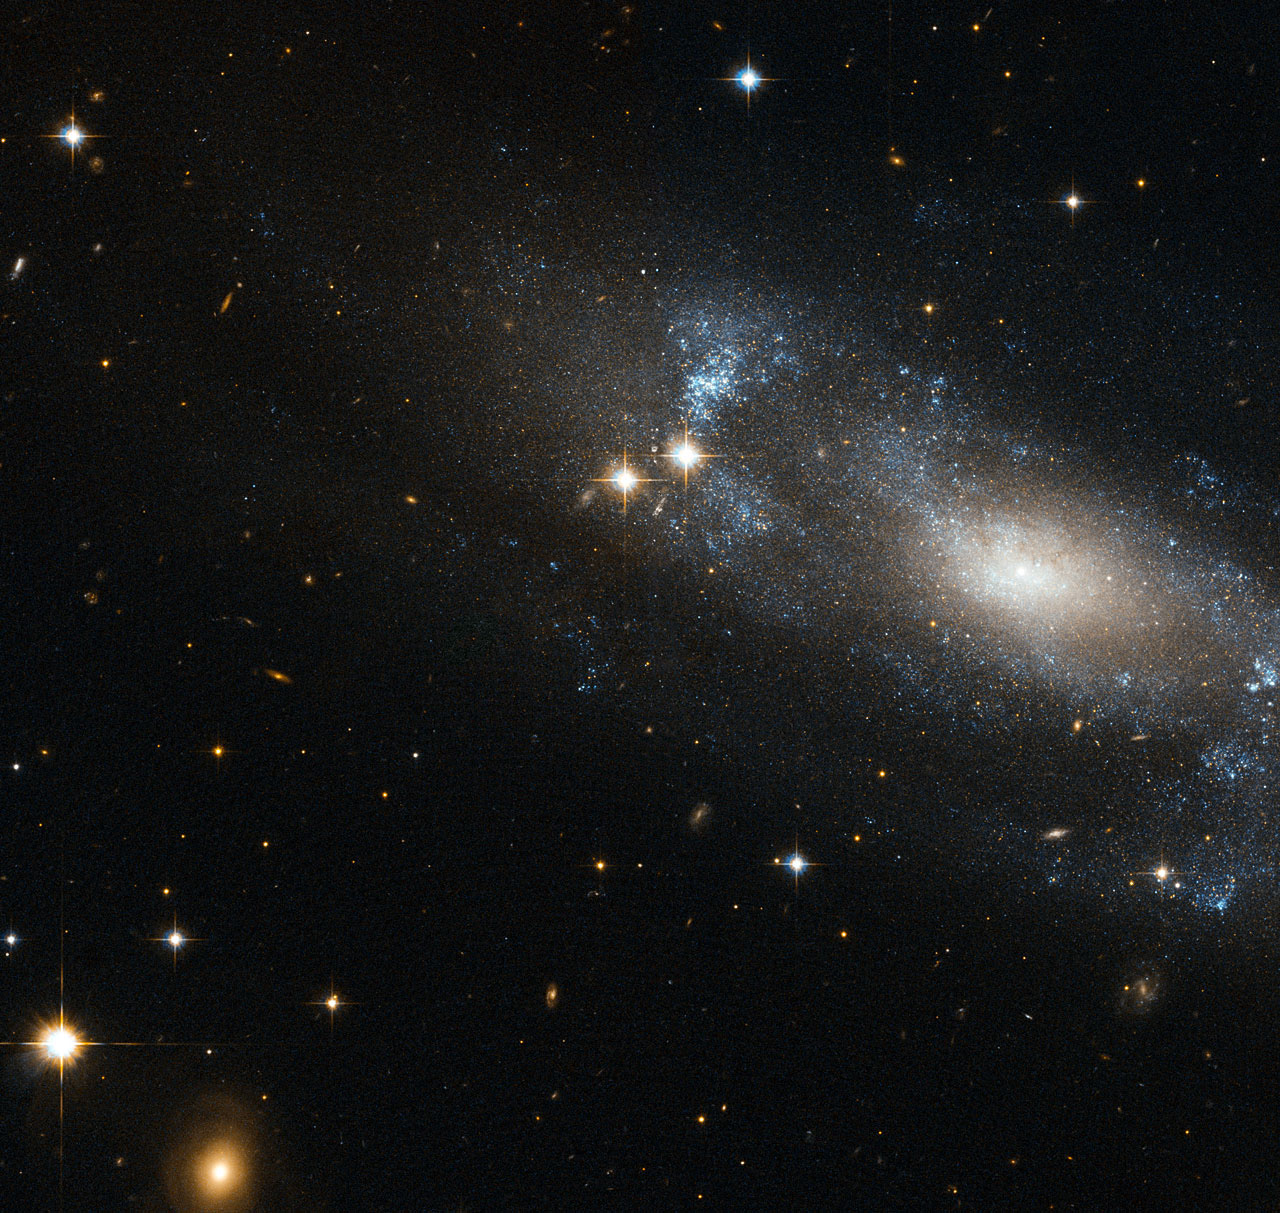 hubble space telescope galaxies - photo #25